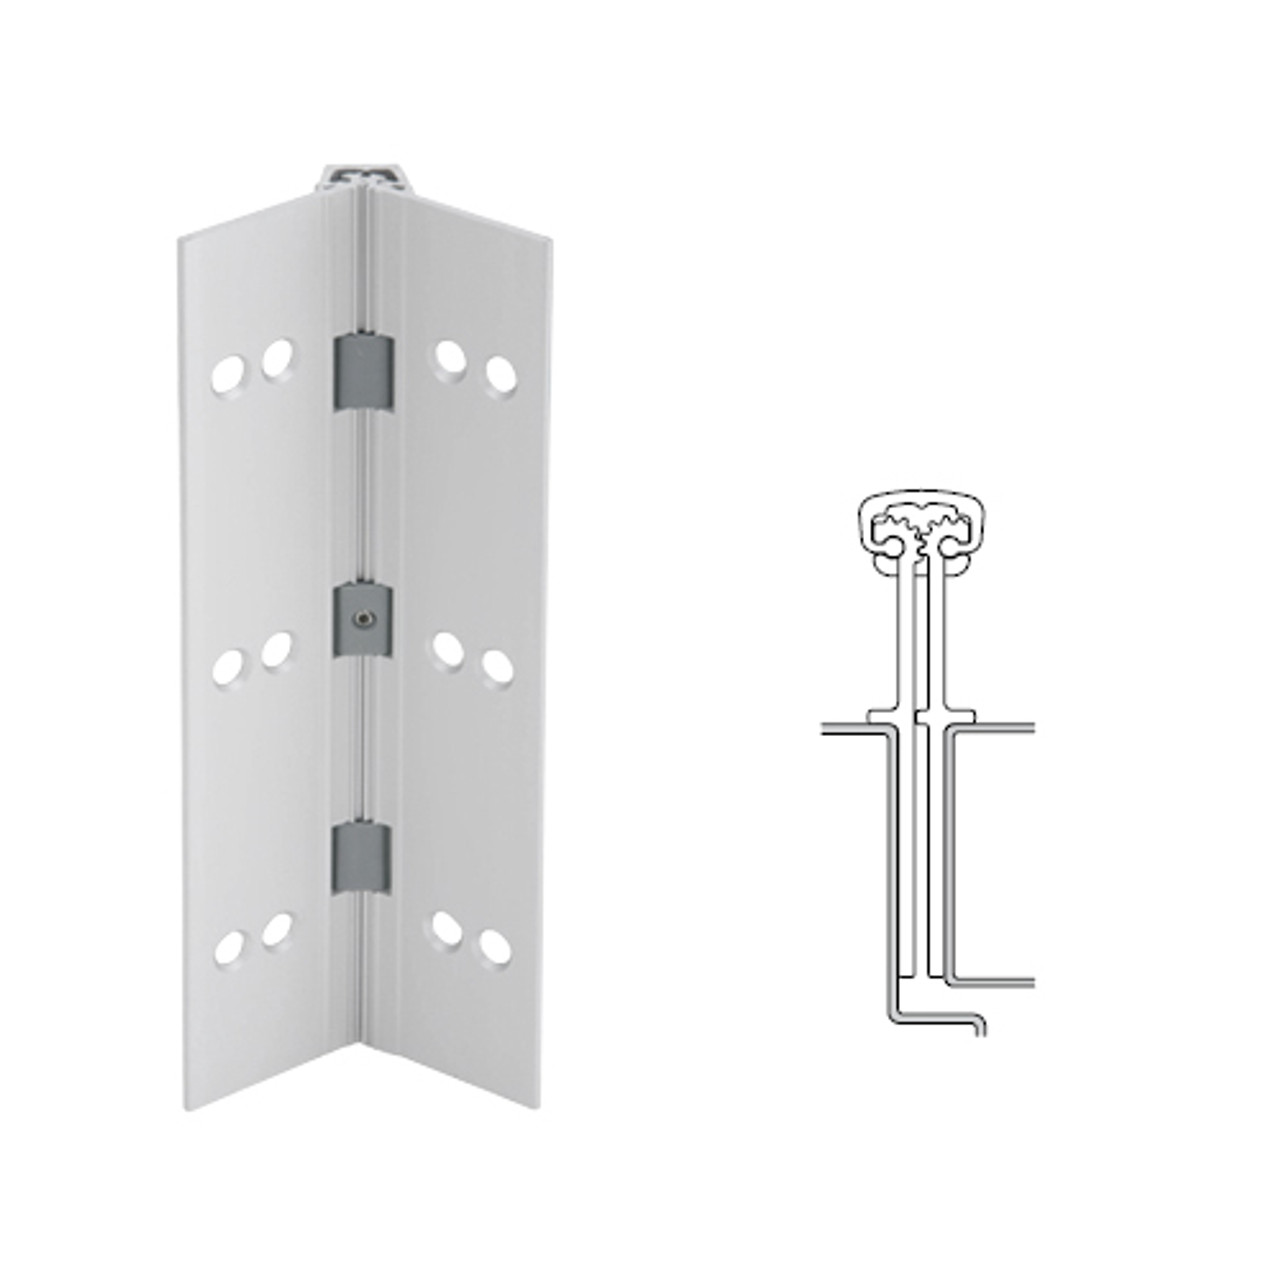 040XY-US28-95-TEKWD IVES Full Mortise Continuous Geared Hinges with Wood Screws in Satin Aluminum